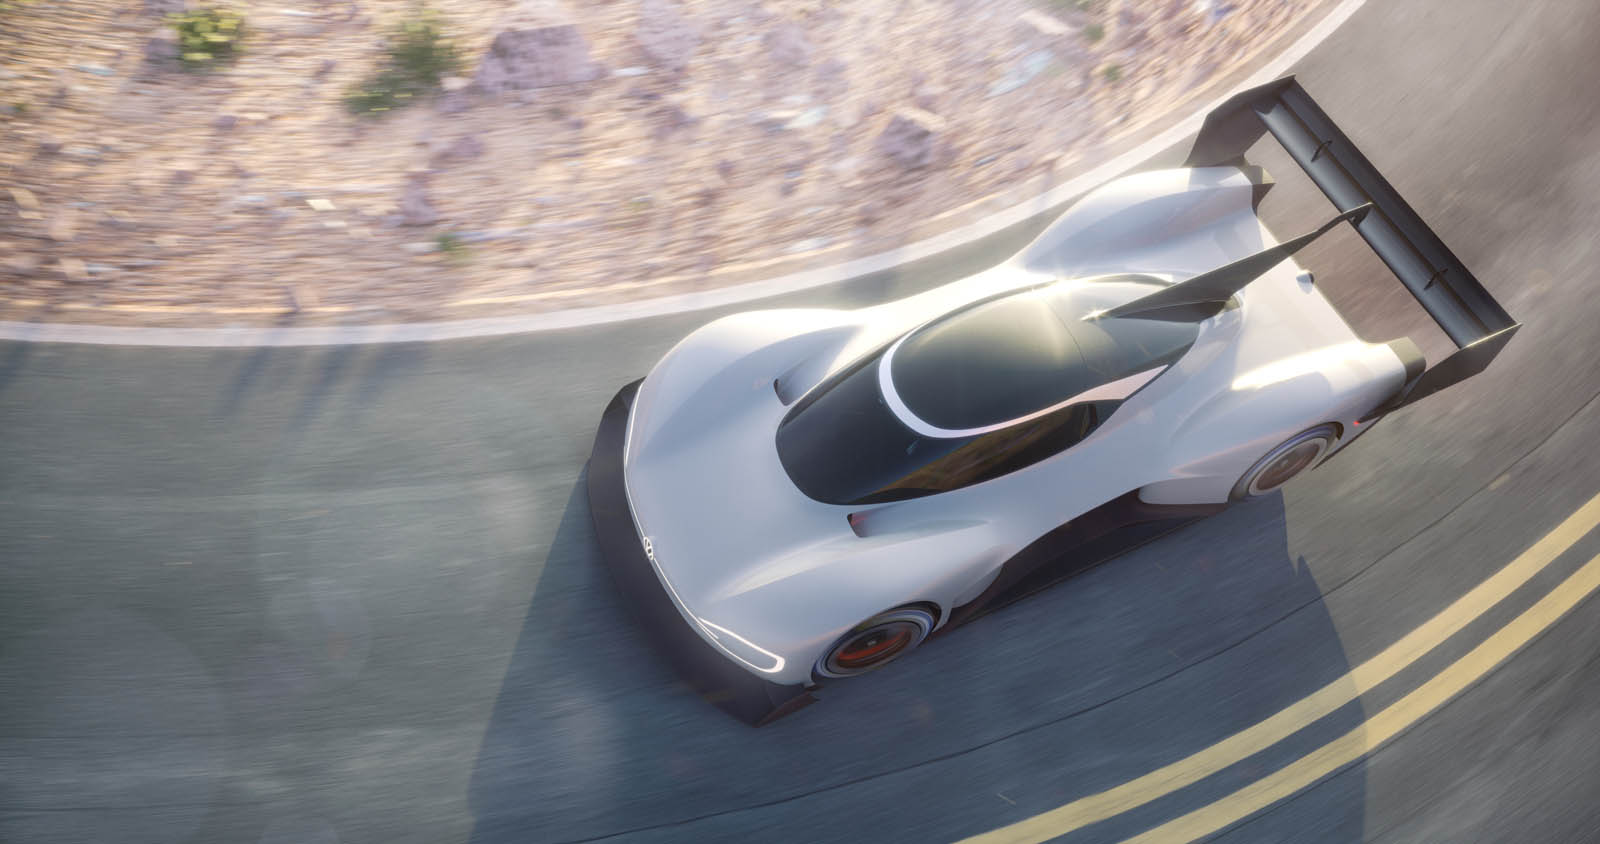 VW will race its all-electric prototype in the Rocky Mountains